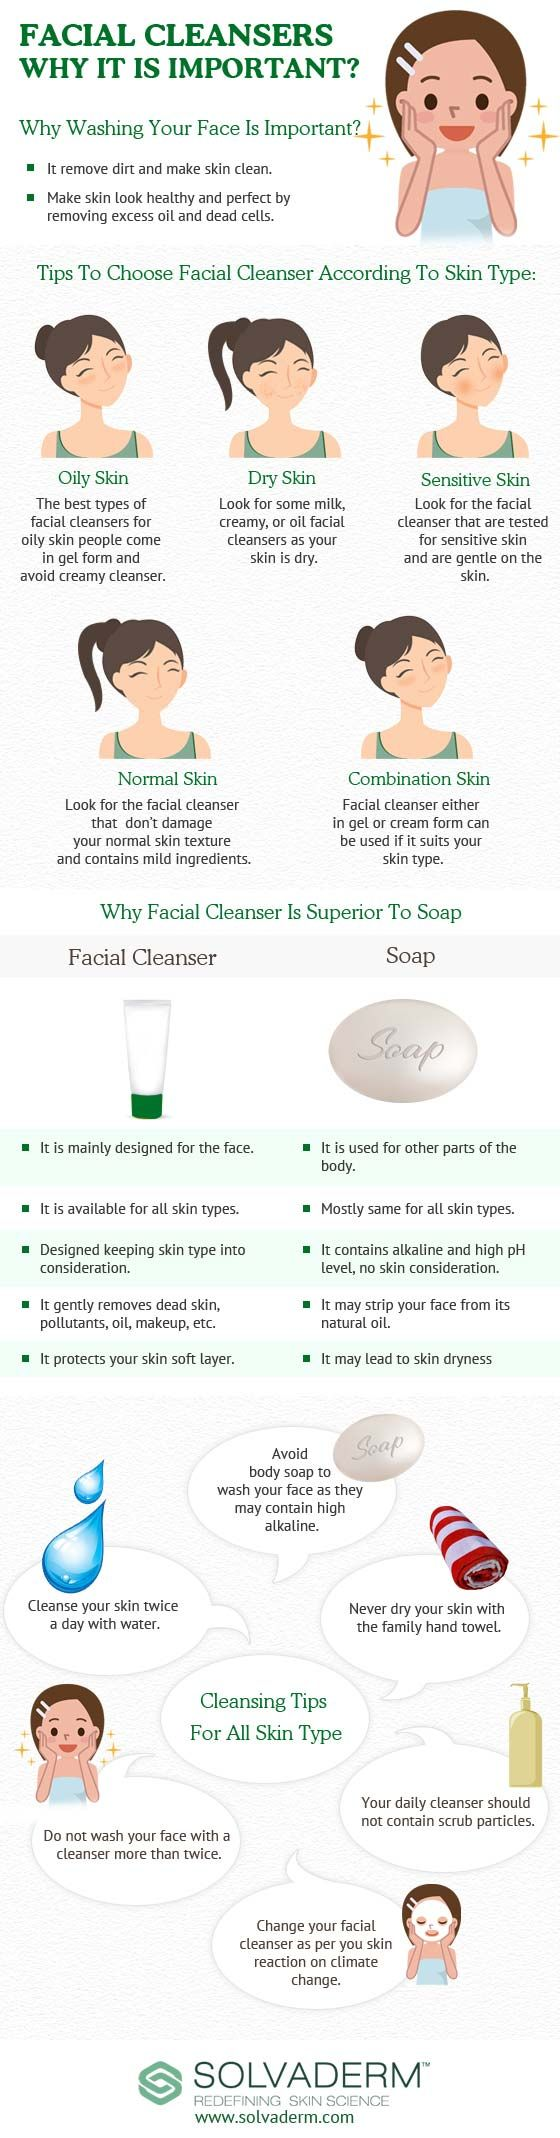 Choosing the Right Facial Cleanser  Facial cleansers have evolved from formulations that not merely cleansed the skin but also provide mildness and moisturizing benefits. There are ingredients that can potentially cause adverse effects like damage to skin proteins and lipids.